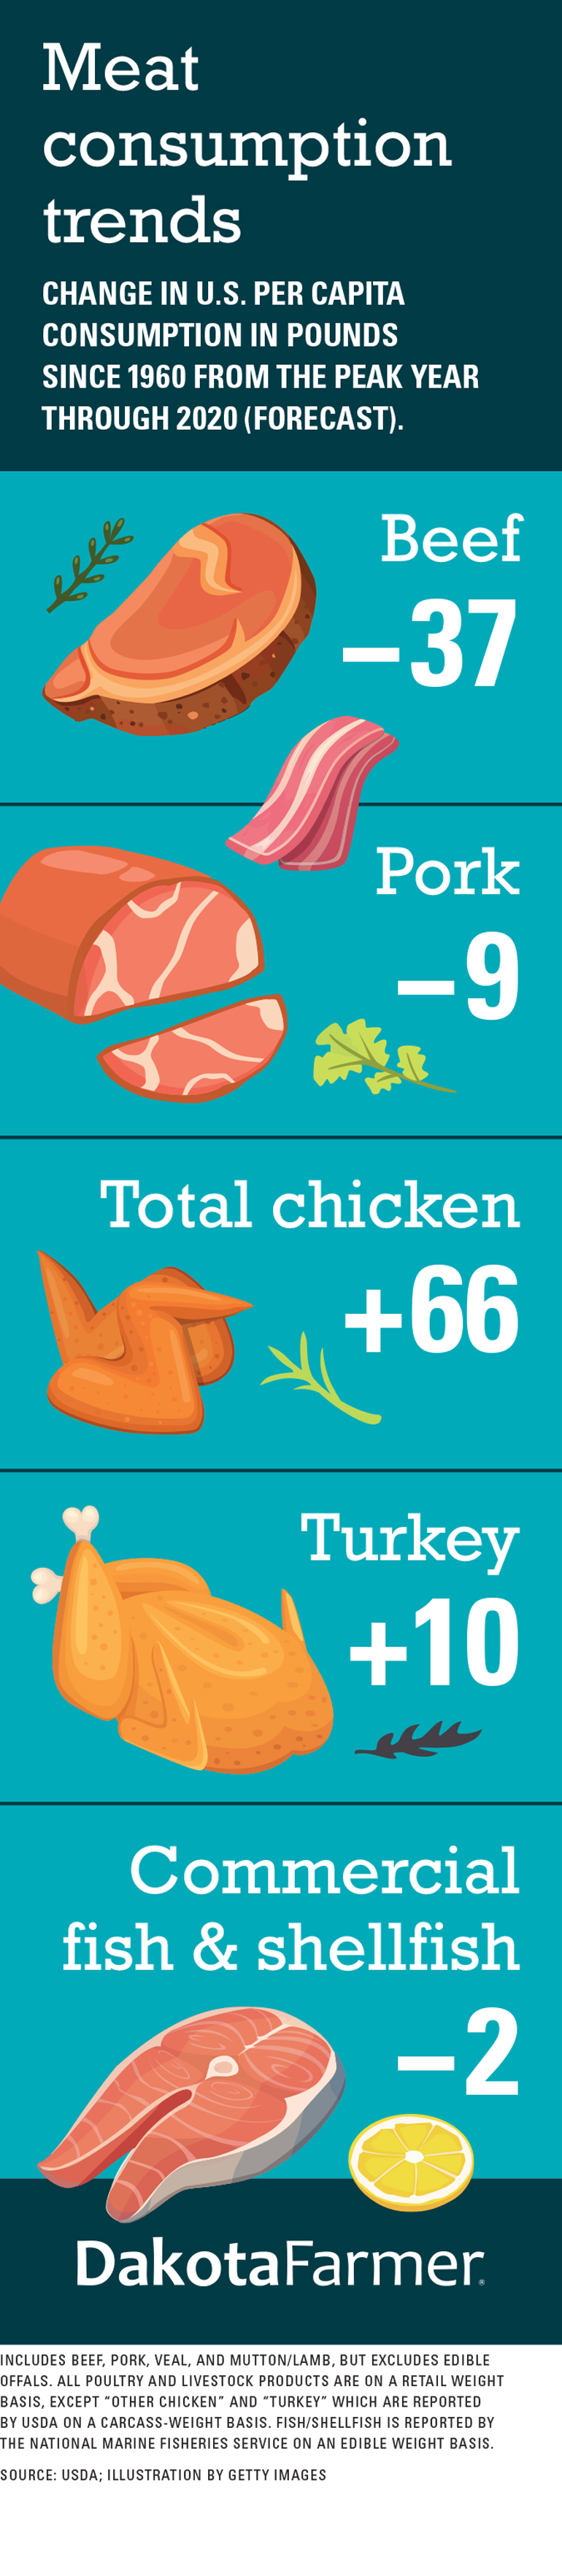 infographic about meat consumption trends